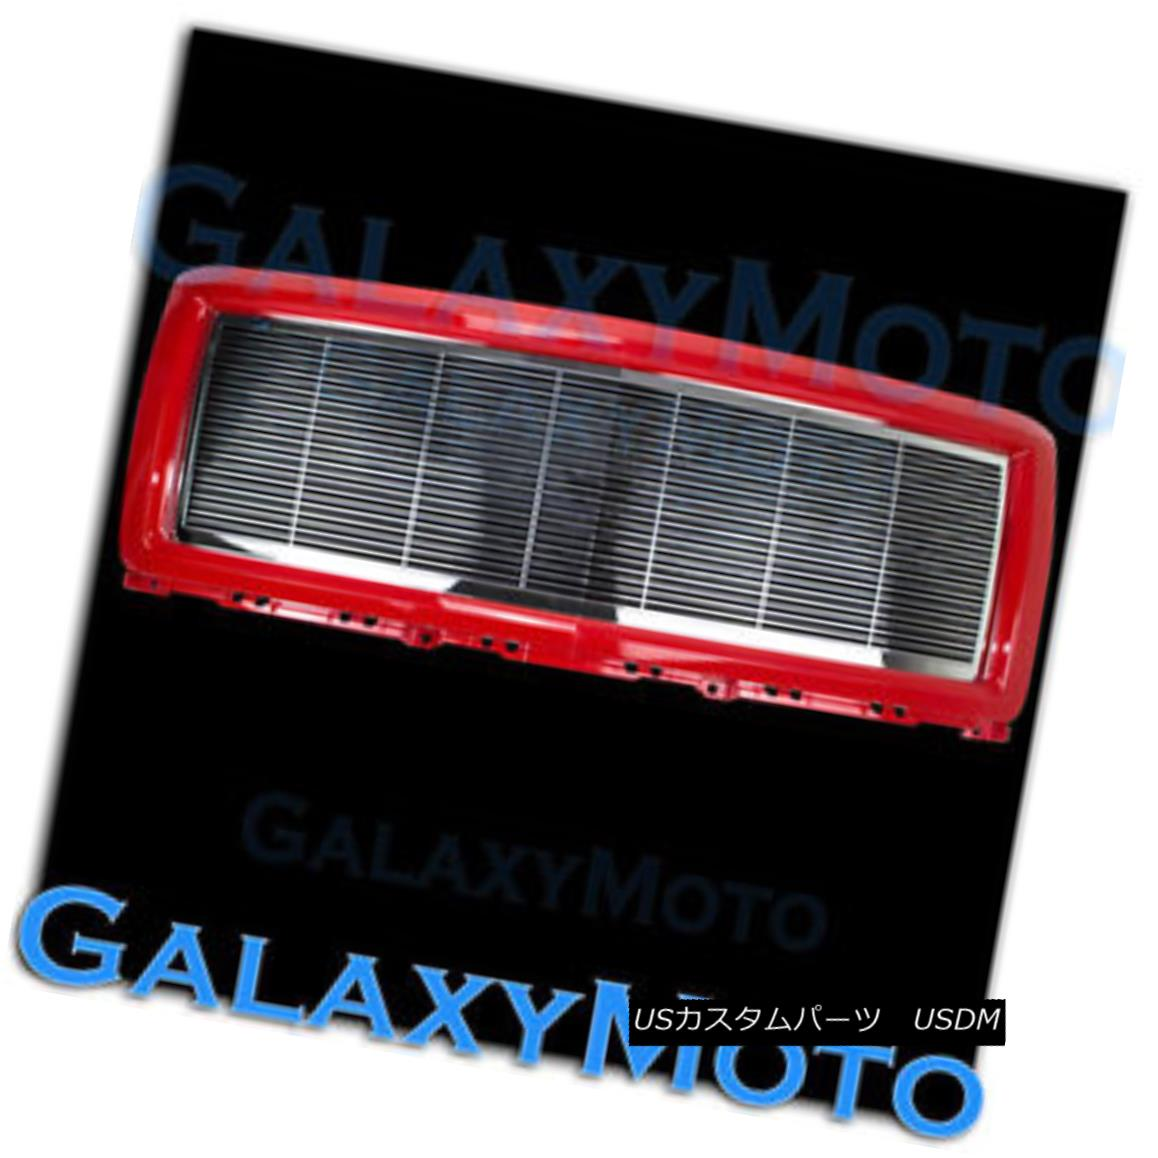 USグリル 14-15 Chevy Silverado 1500 Chrome Billet Grille+Victory Red Replacement Shell 14-15 Chevy Silverado 1500クロムビレットグリル+ Victory Red Replacement Shell